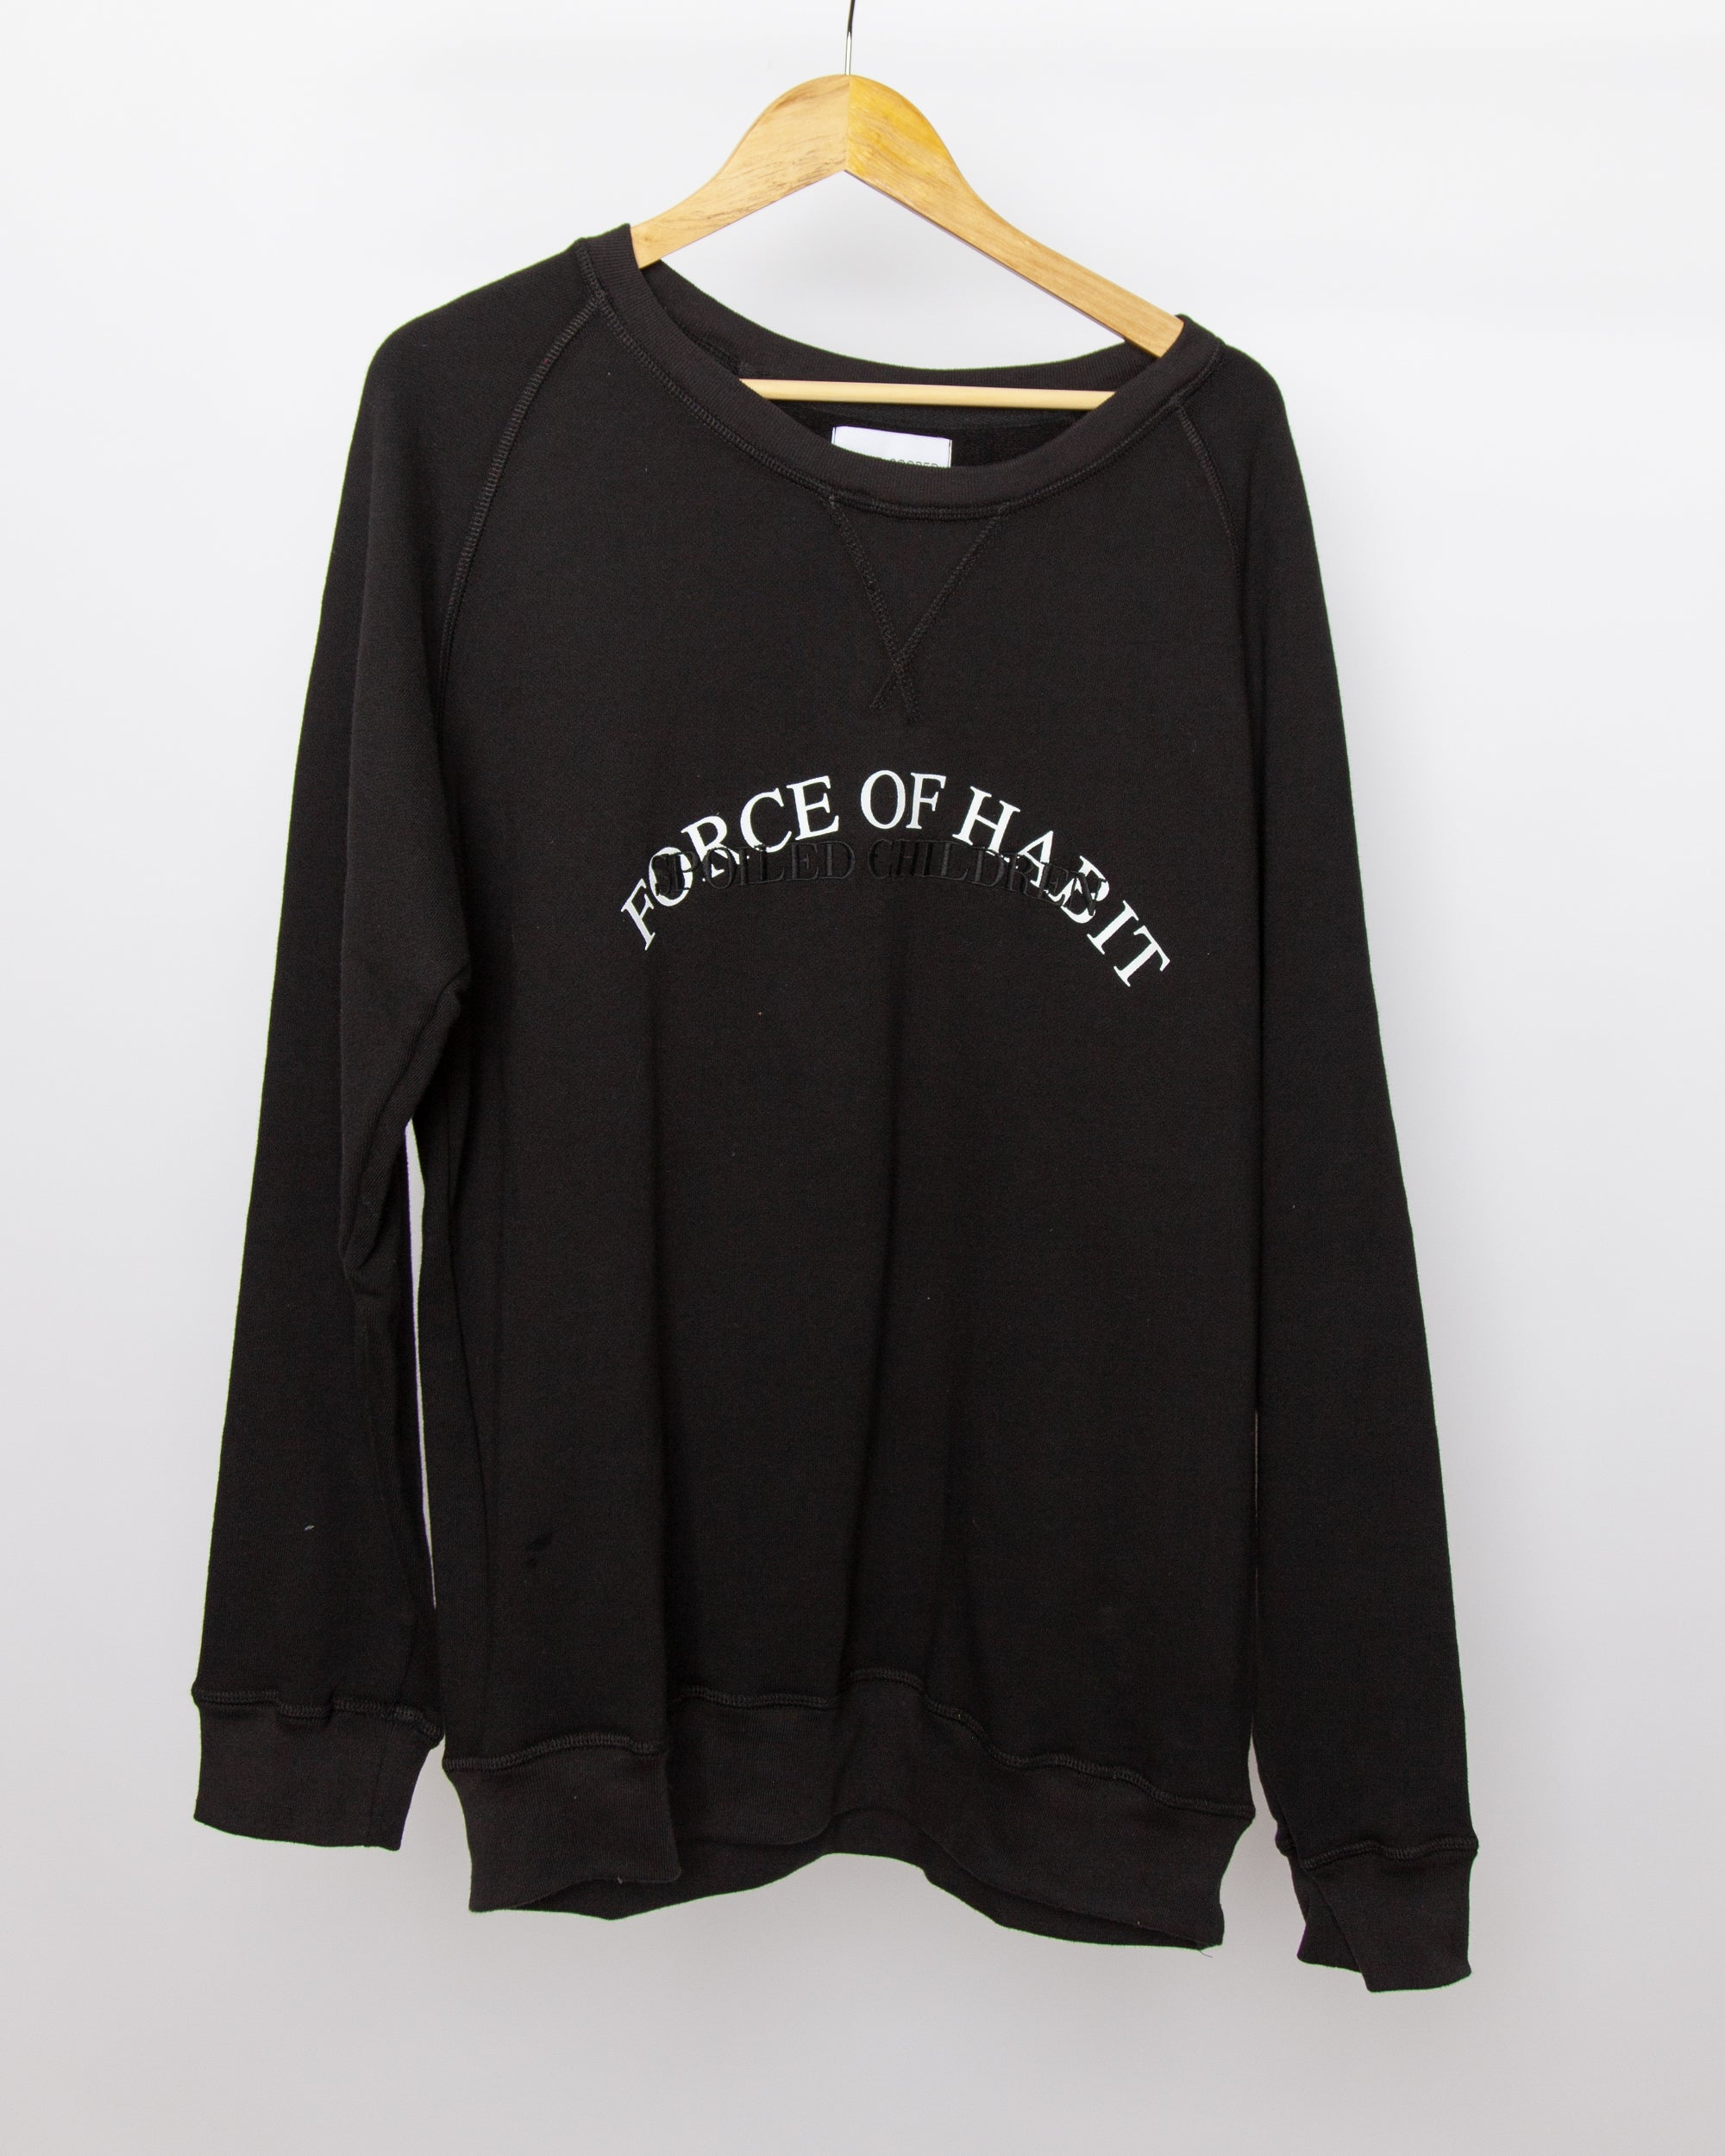 Spoiled Children - Force of Habit Sweatshirt in Black